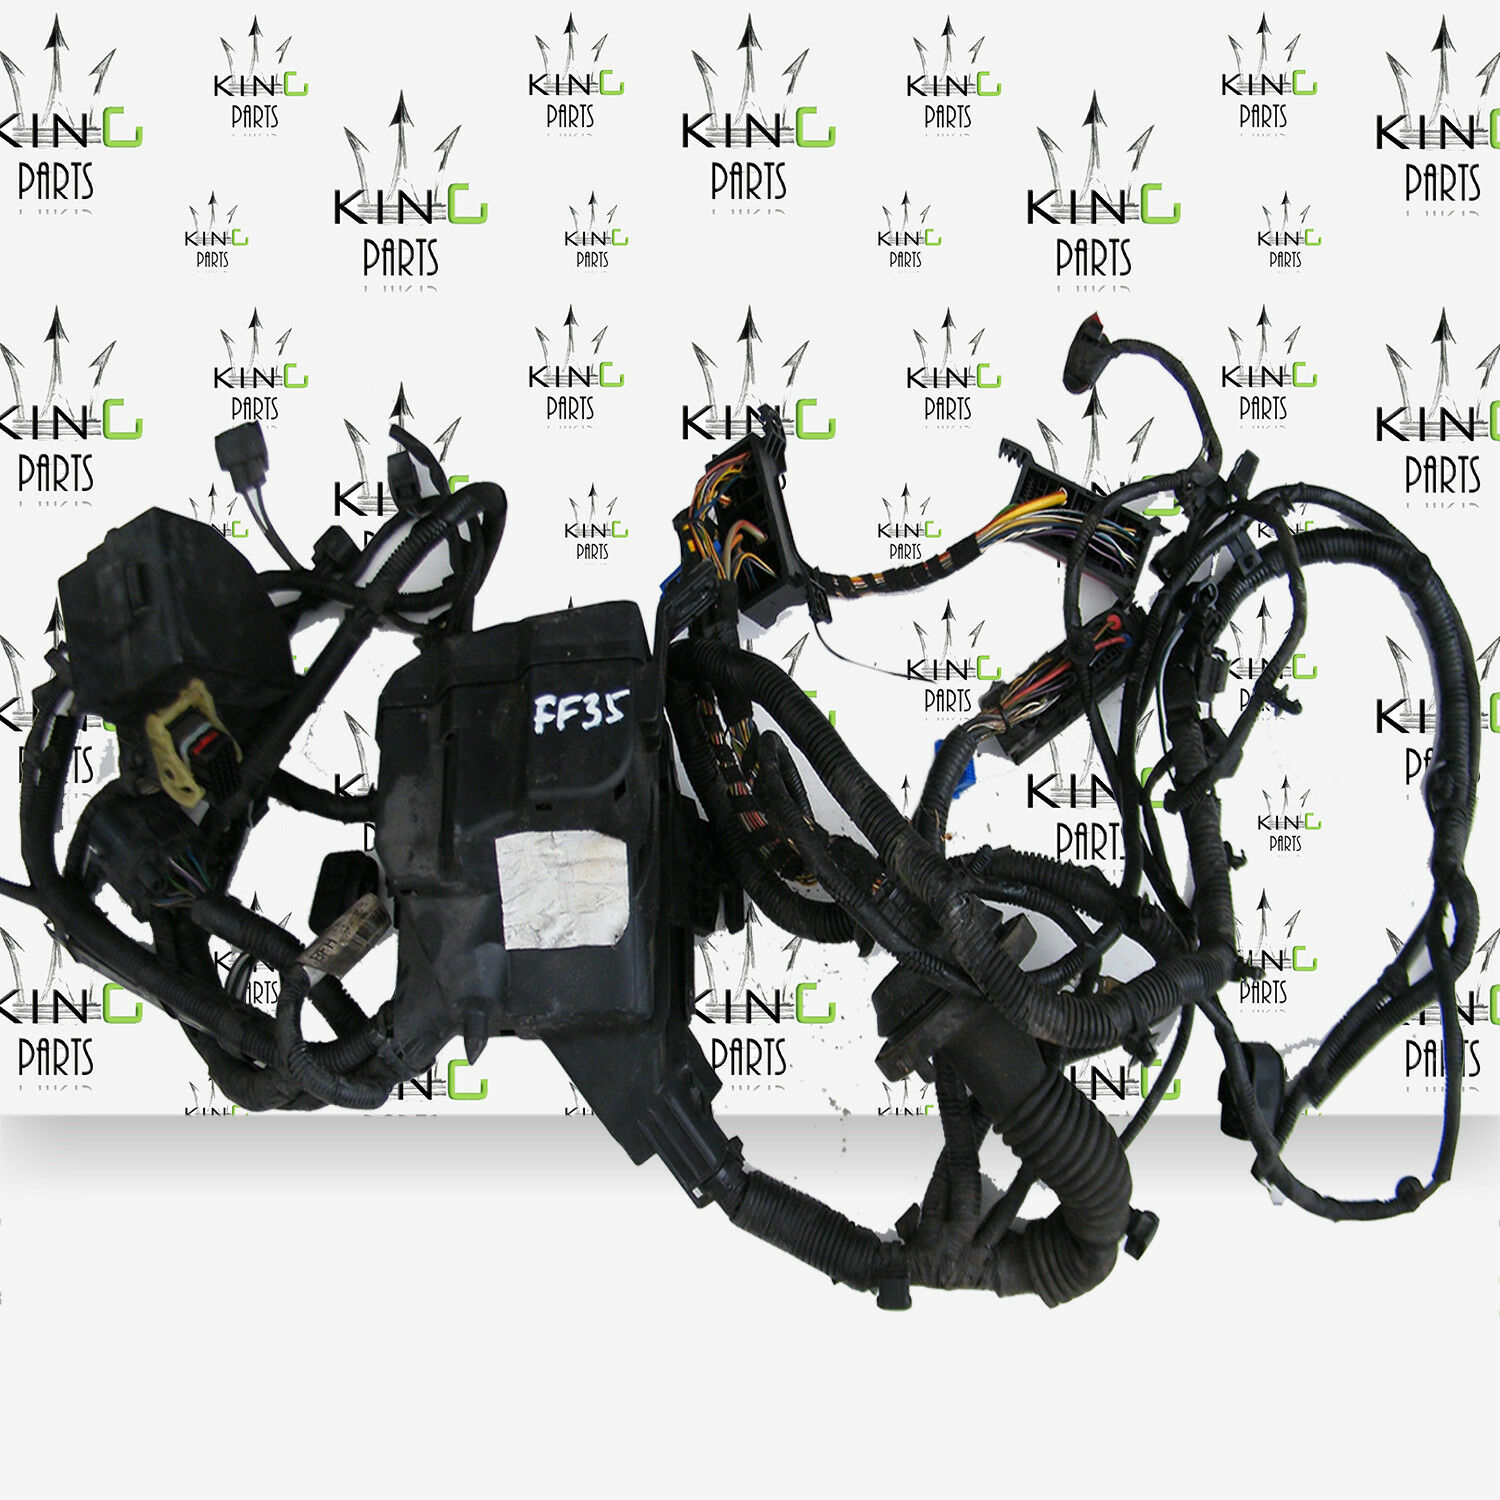 Fiesta Mk7 2008 2016 Petrol 14 Relay Fuse Box Wiring Loom Harness 1 Of 6free Shipping